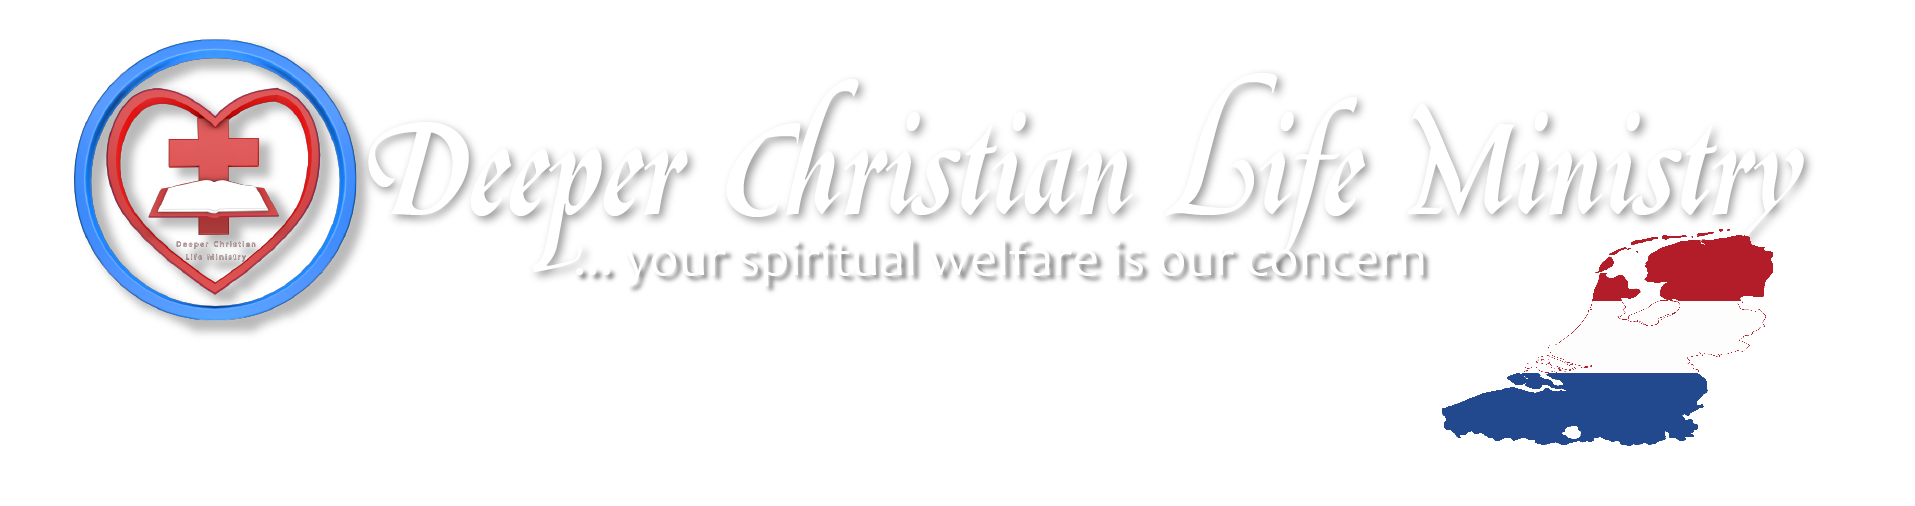 Deeper Christian Life Ministry, Netherlands